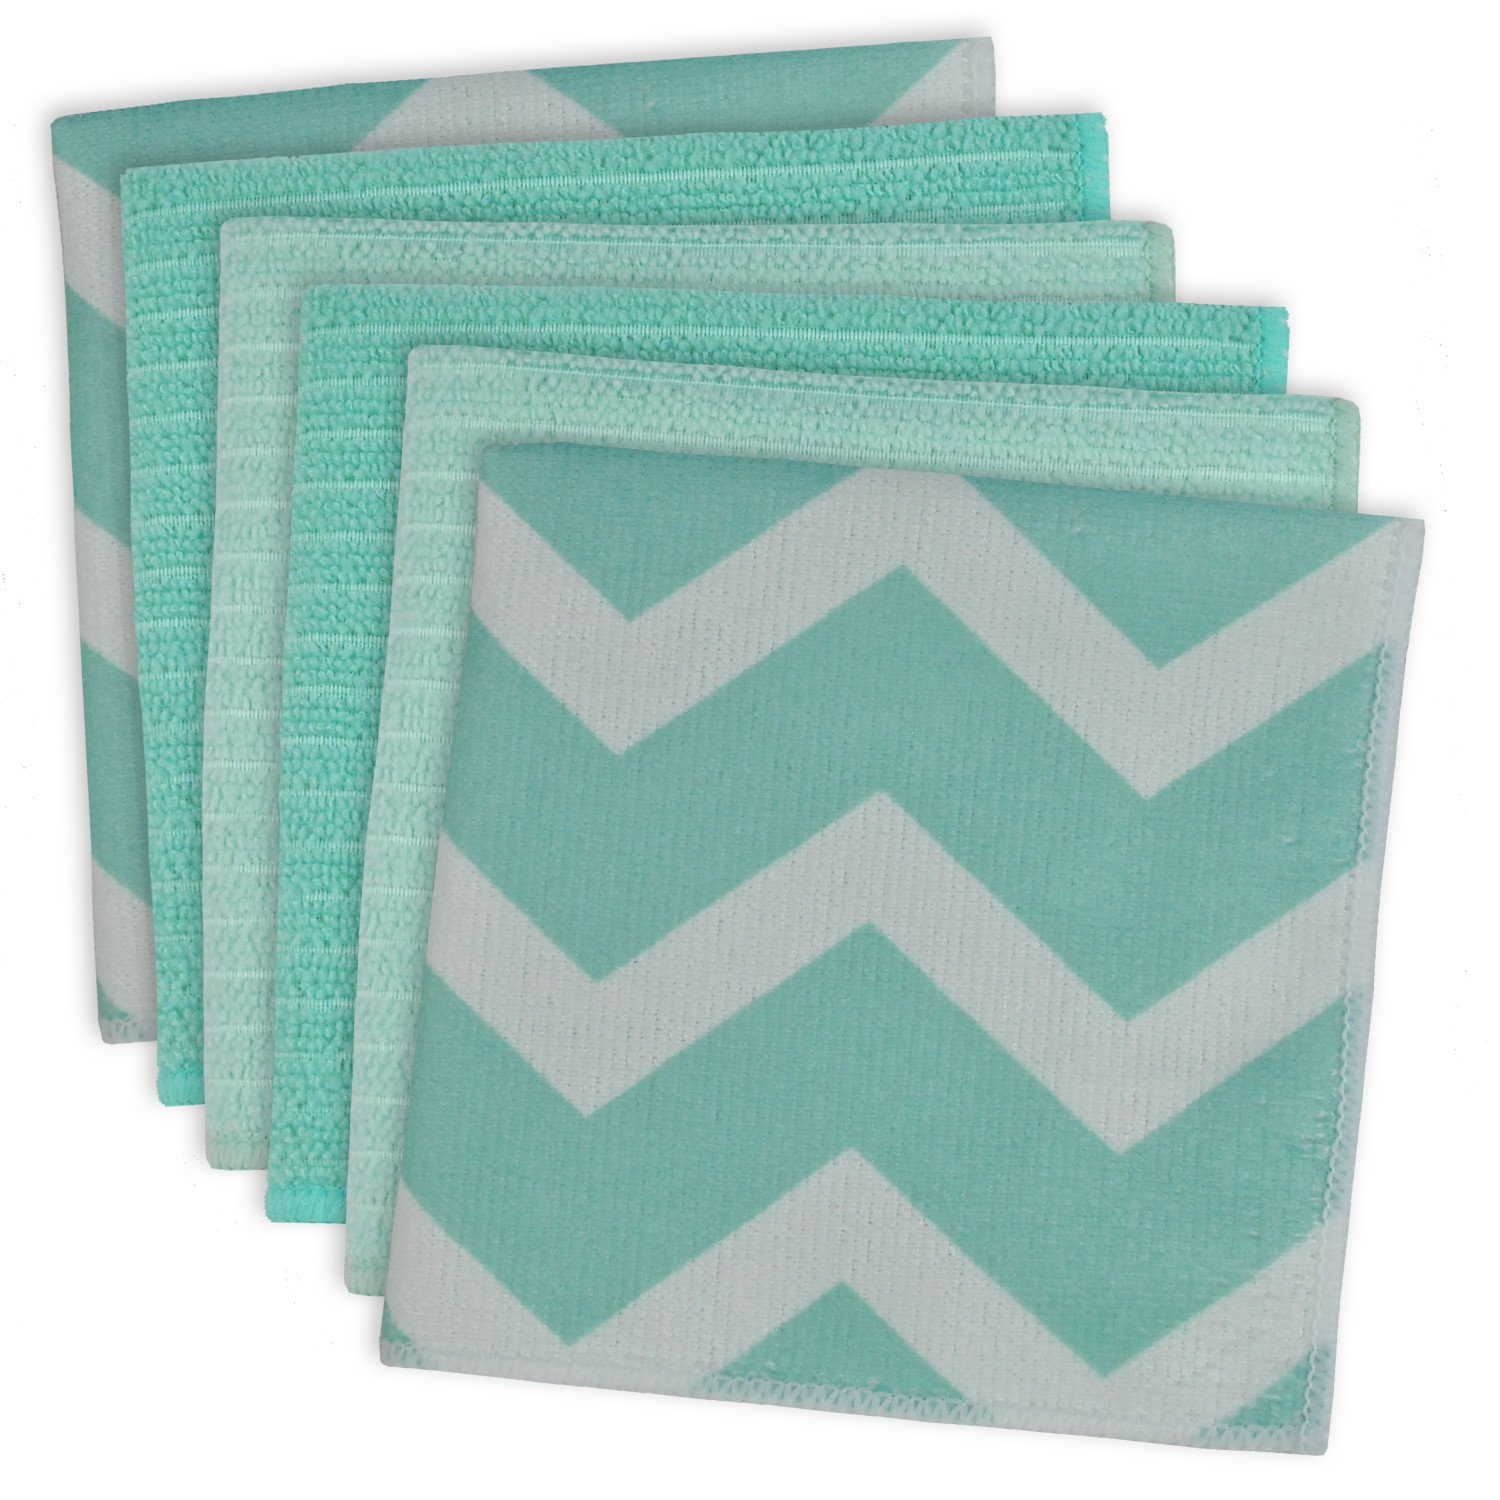 DII Microfiber Multi-Purpose Cleaning Cloths Perfect for Kitchens, Dishes, Car, Dusting, Drying Rags, 12 x 12, Set of 6 - Aqua Chevron